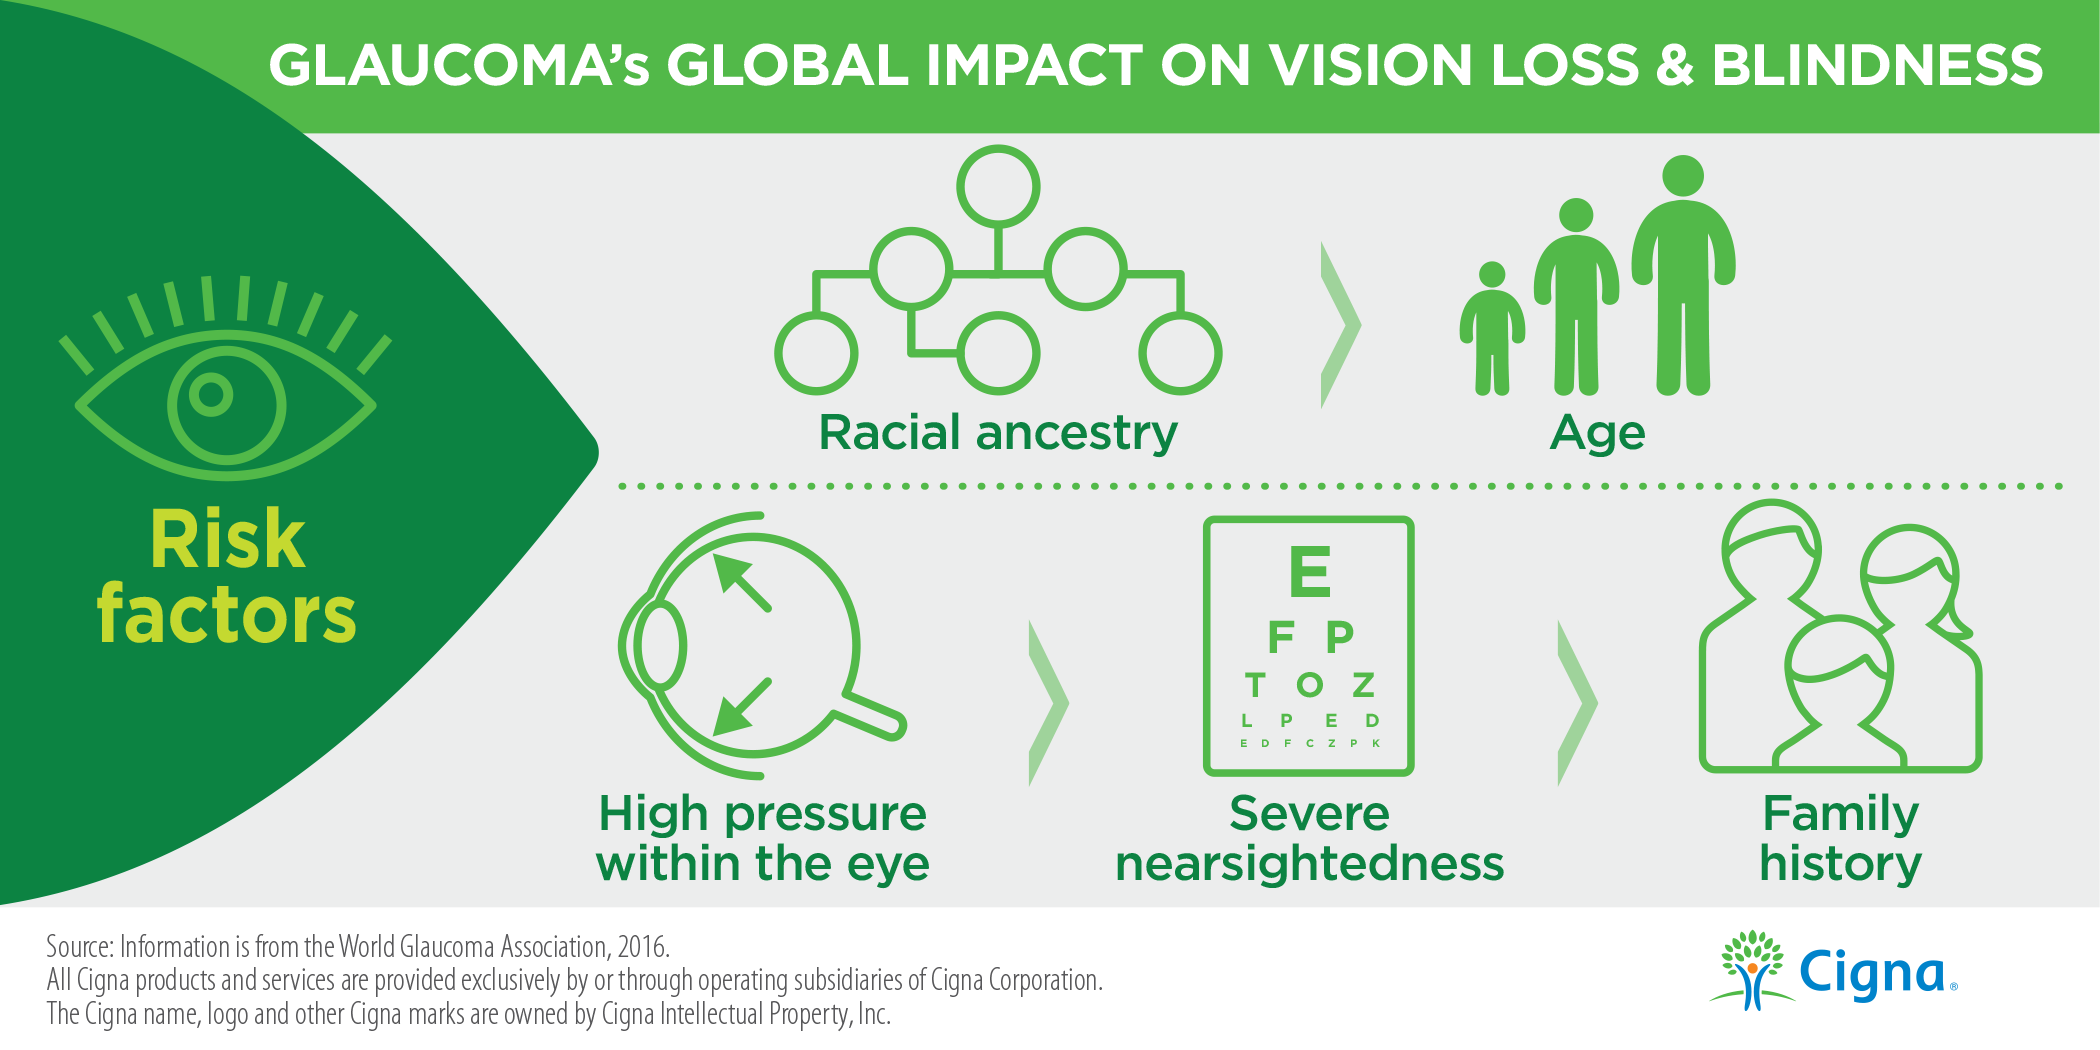 Glaucoma's Global Impact on Vision Loss & Blindness Infographic